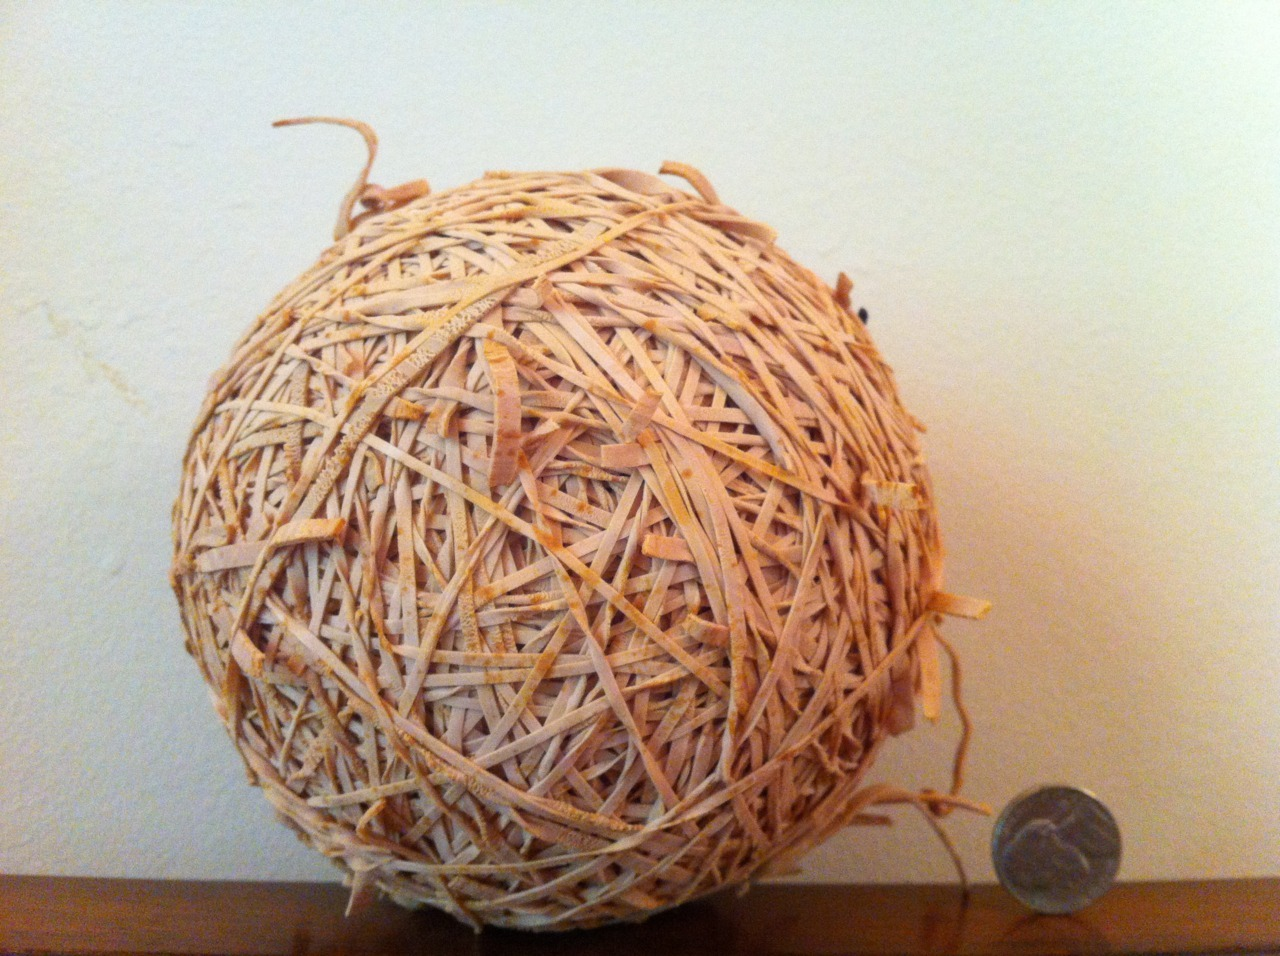 Old rubber band ball.  Went into retirement in 1999. (paper clip center)